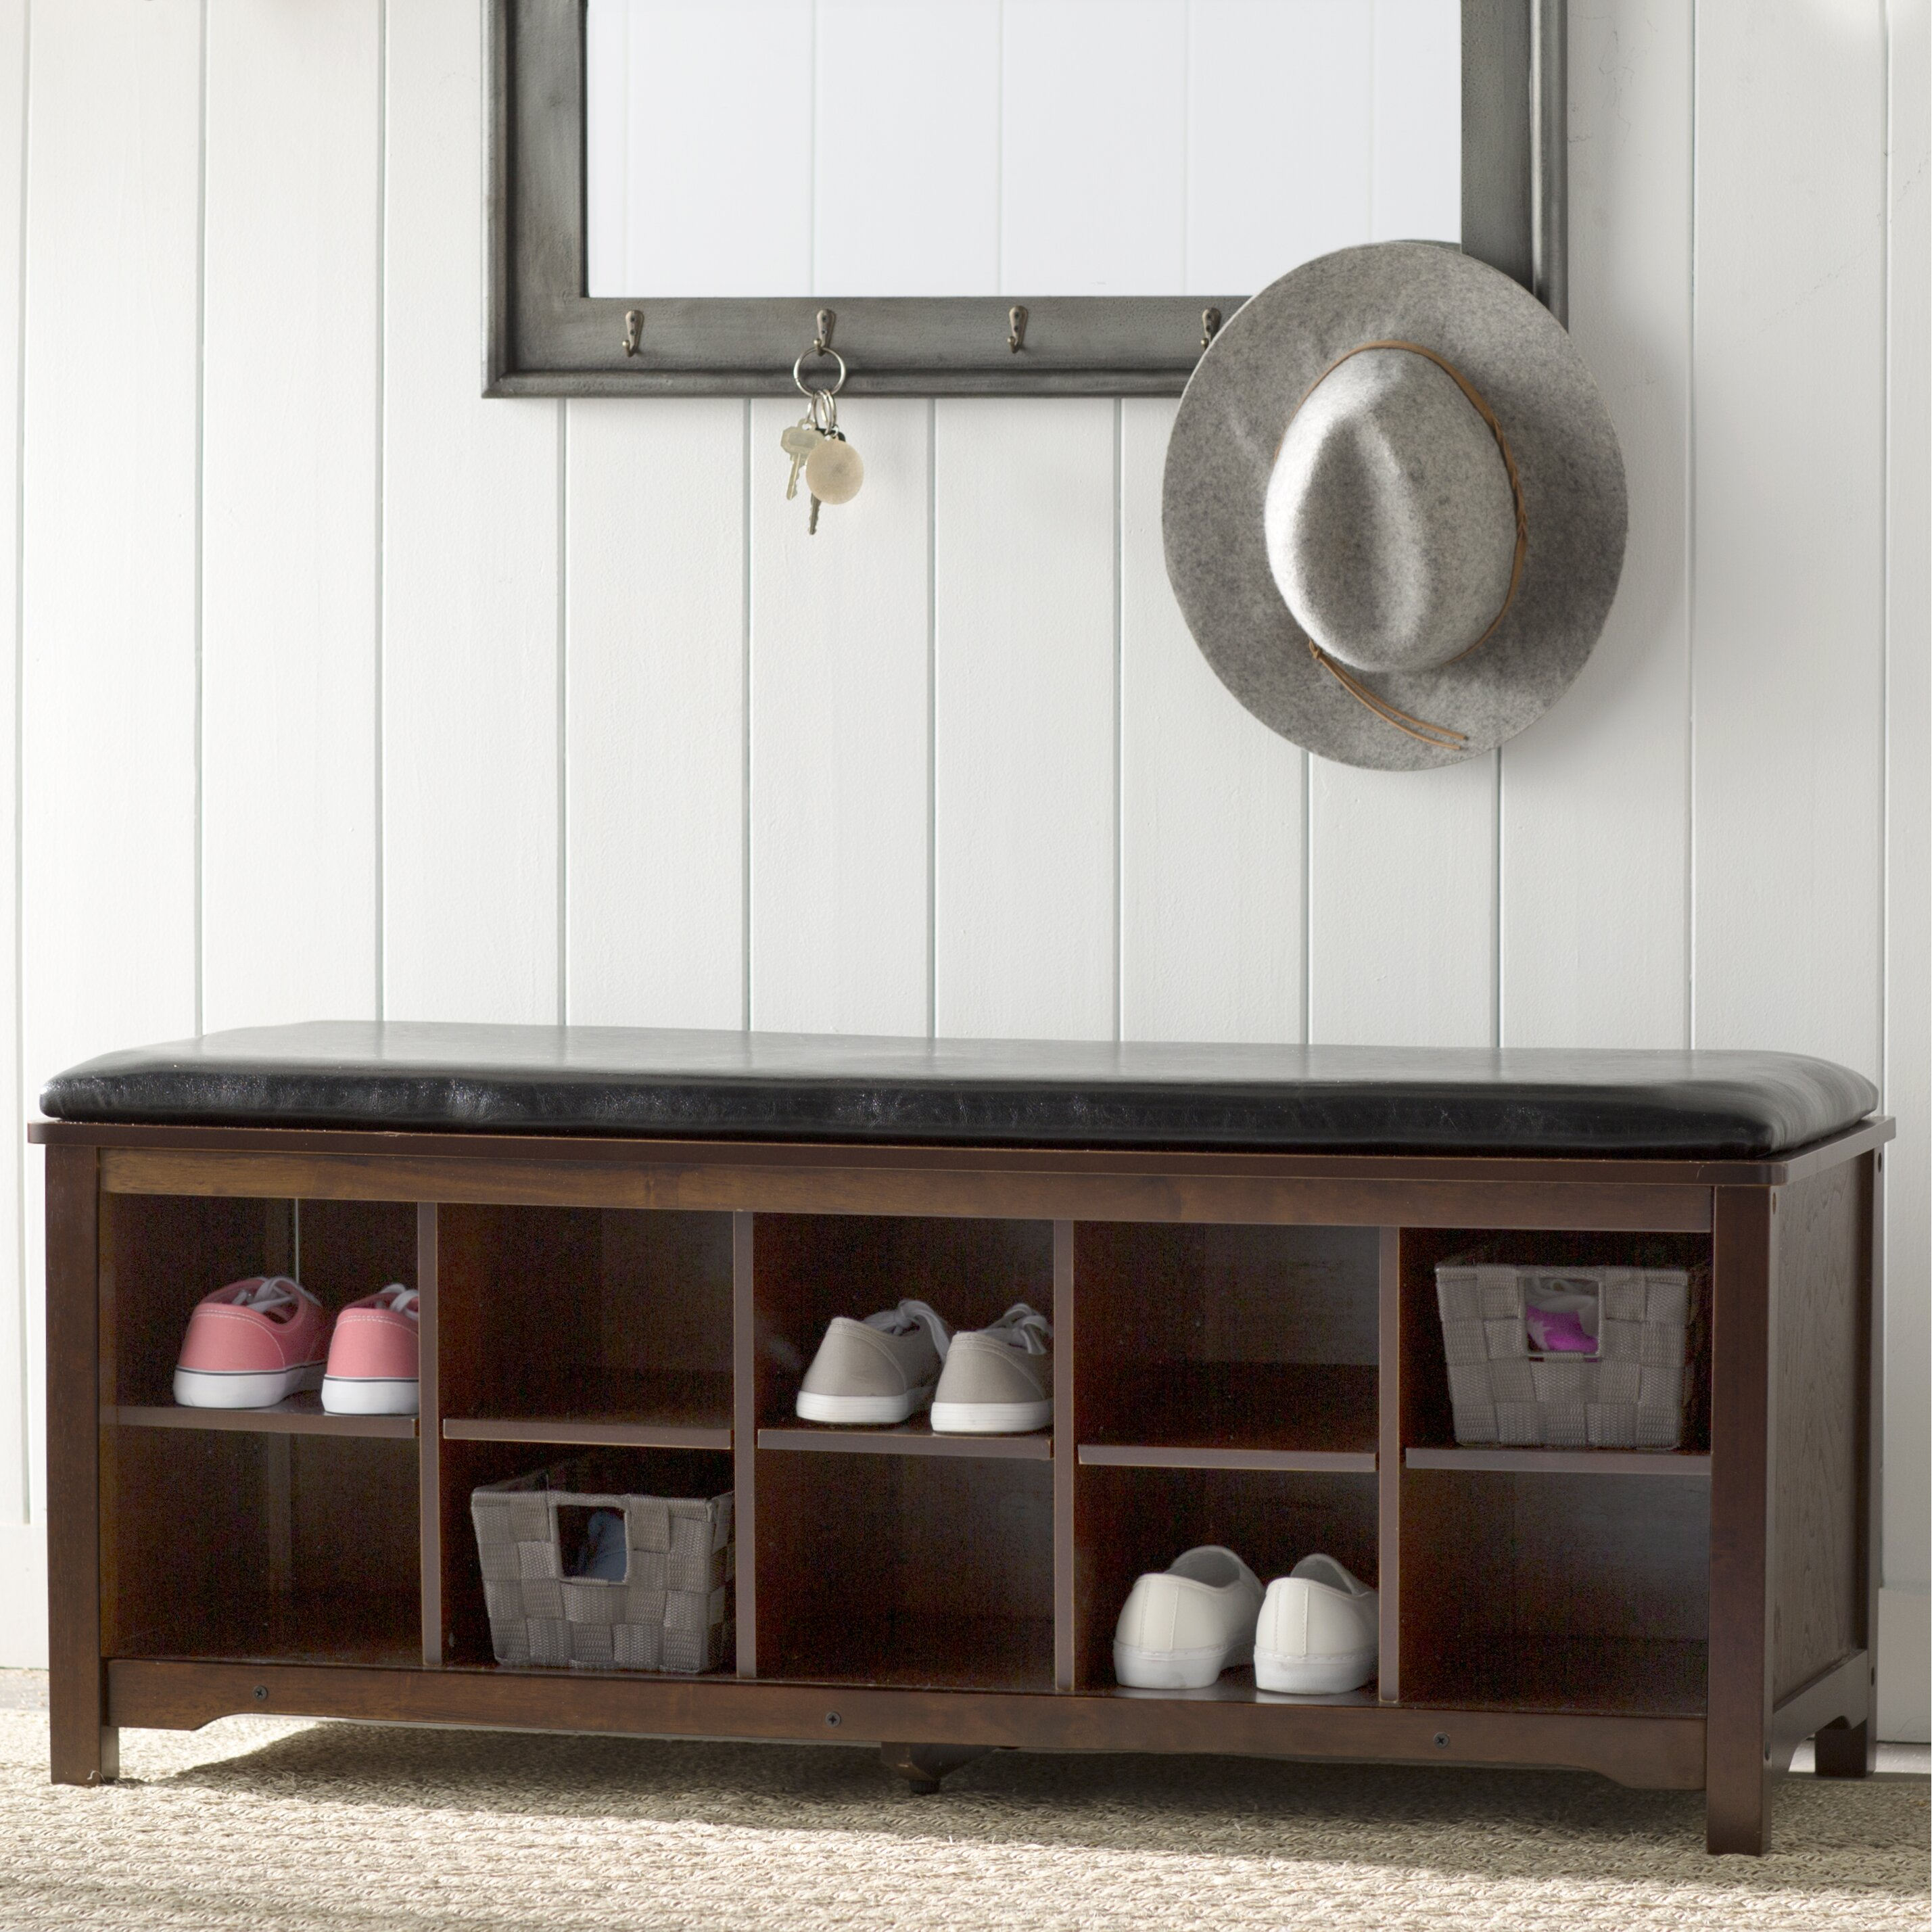 Charlton Home Benton Cape Anne Wood Storage Entryway Bench